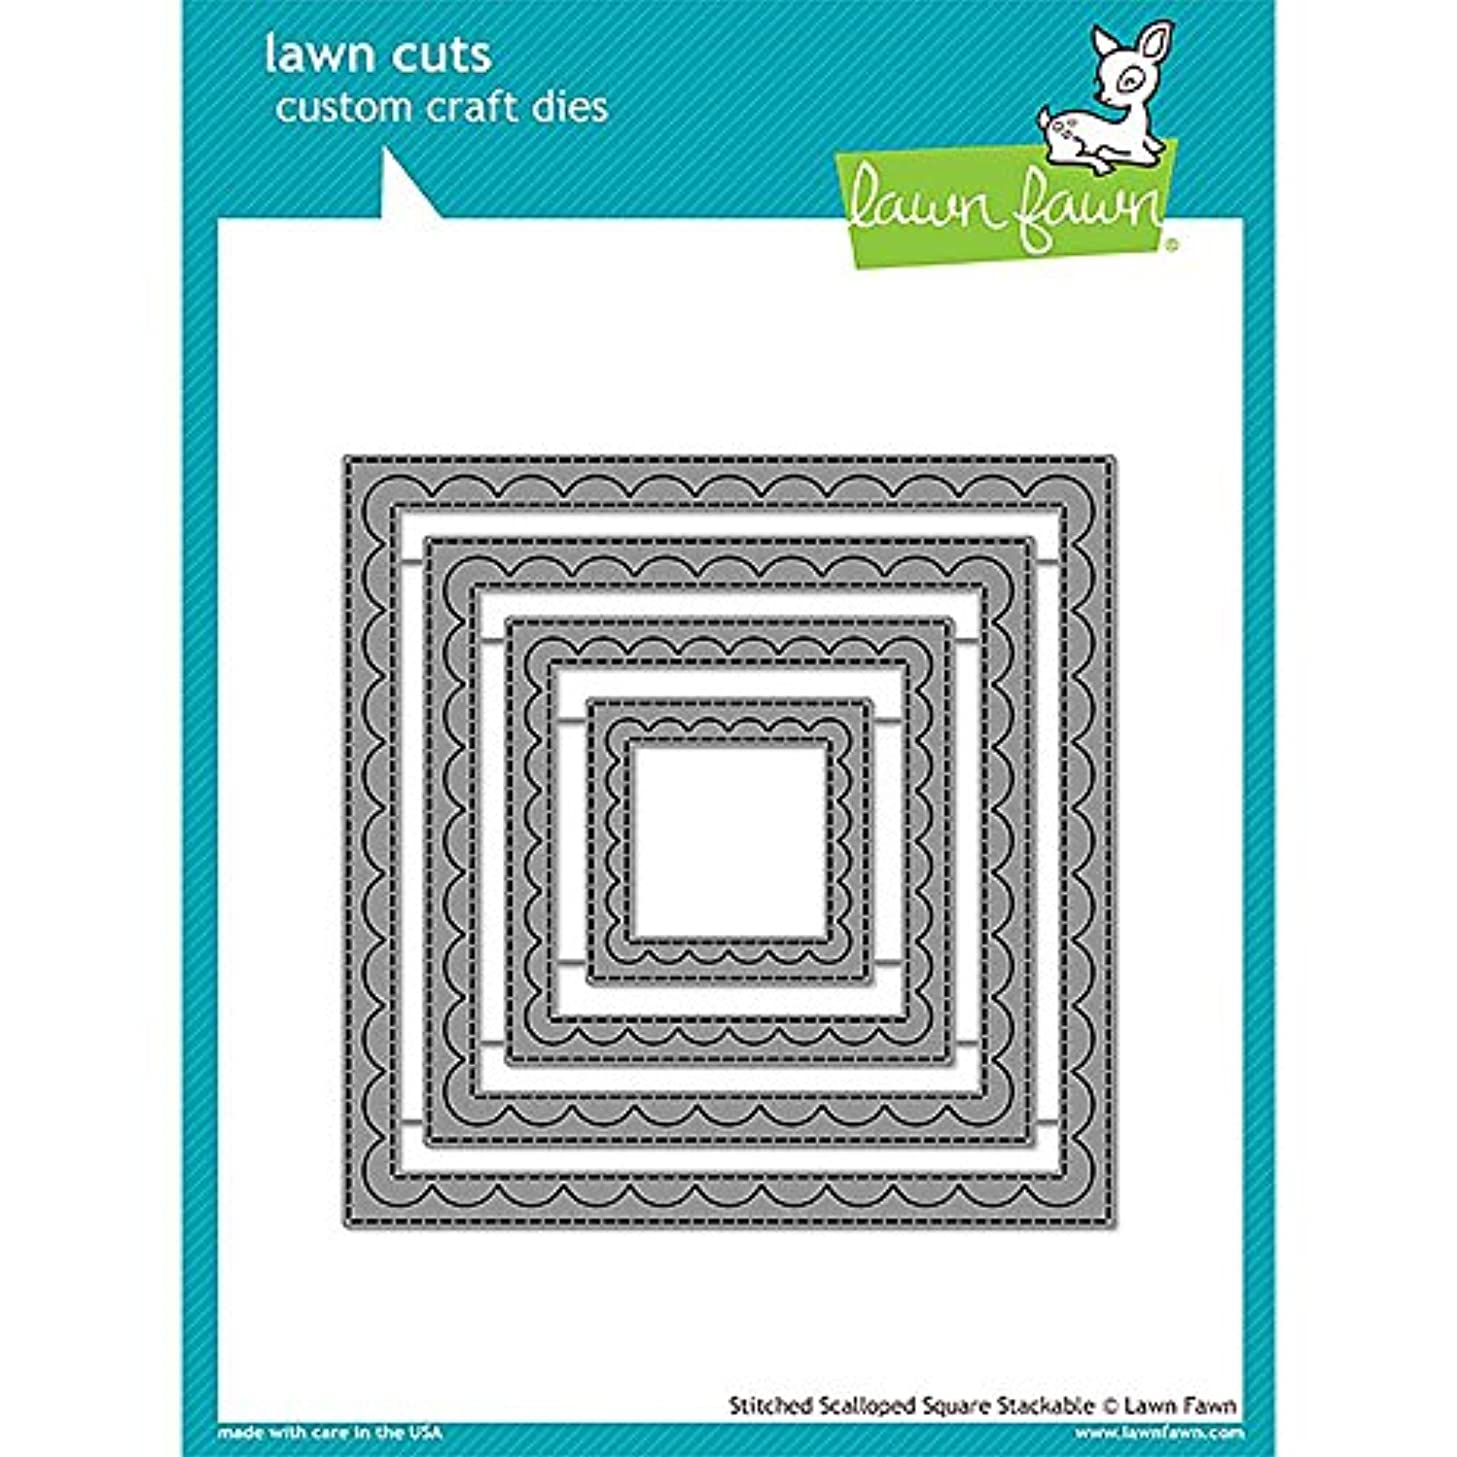 Lawn Fawn Lawn Cuts Custom Craft Die - Outside in Stitched Scalloped Square Stackables (LF1506)